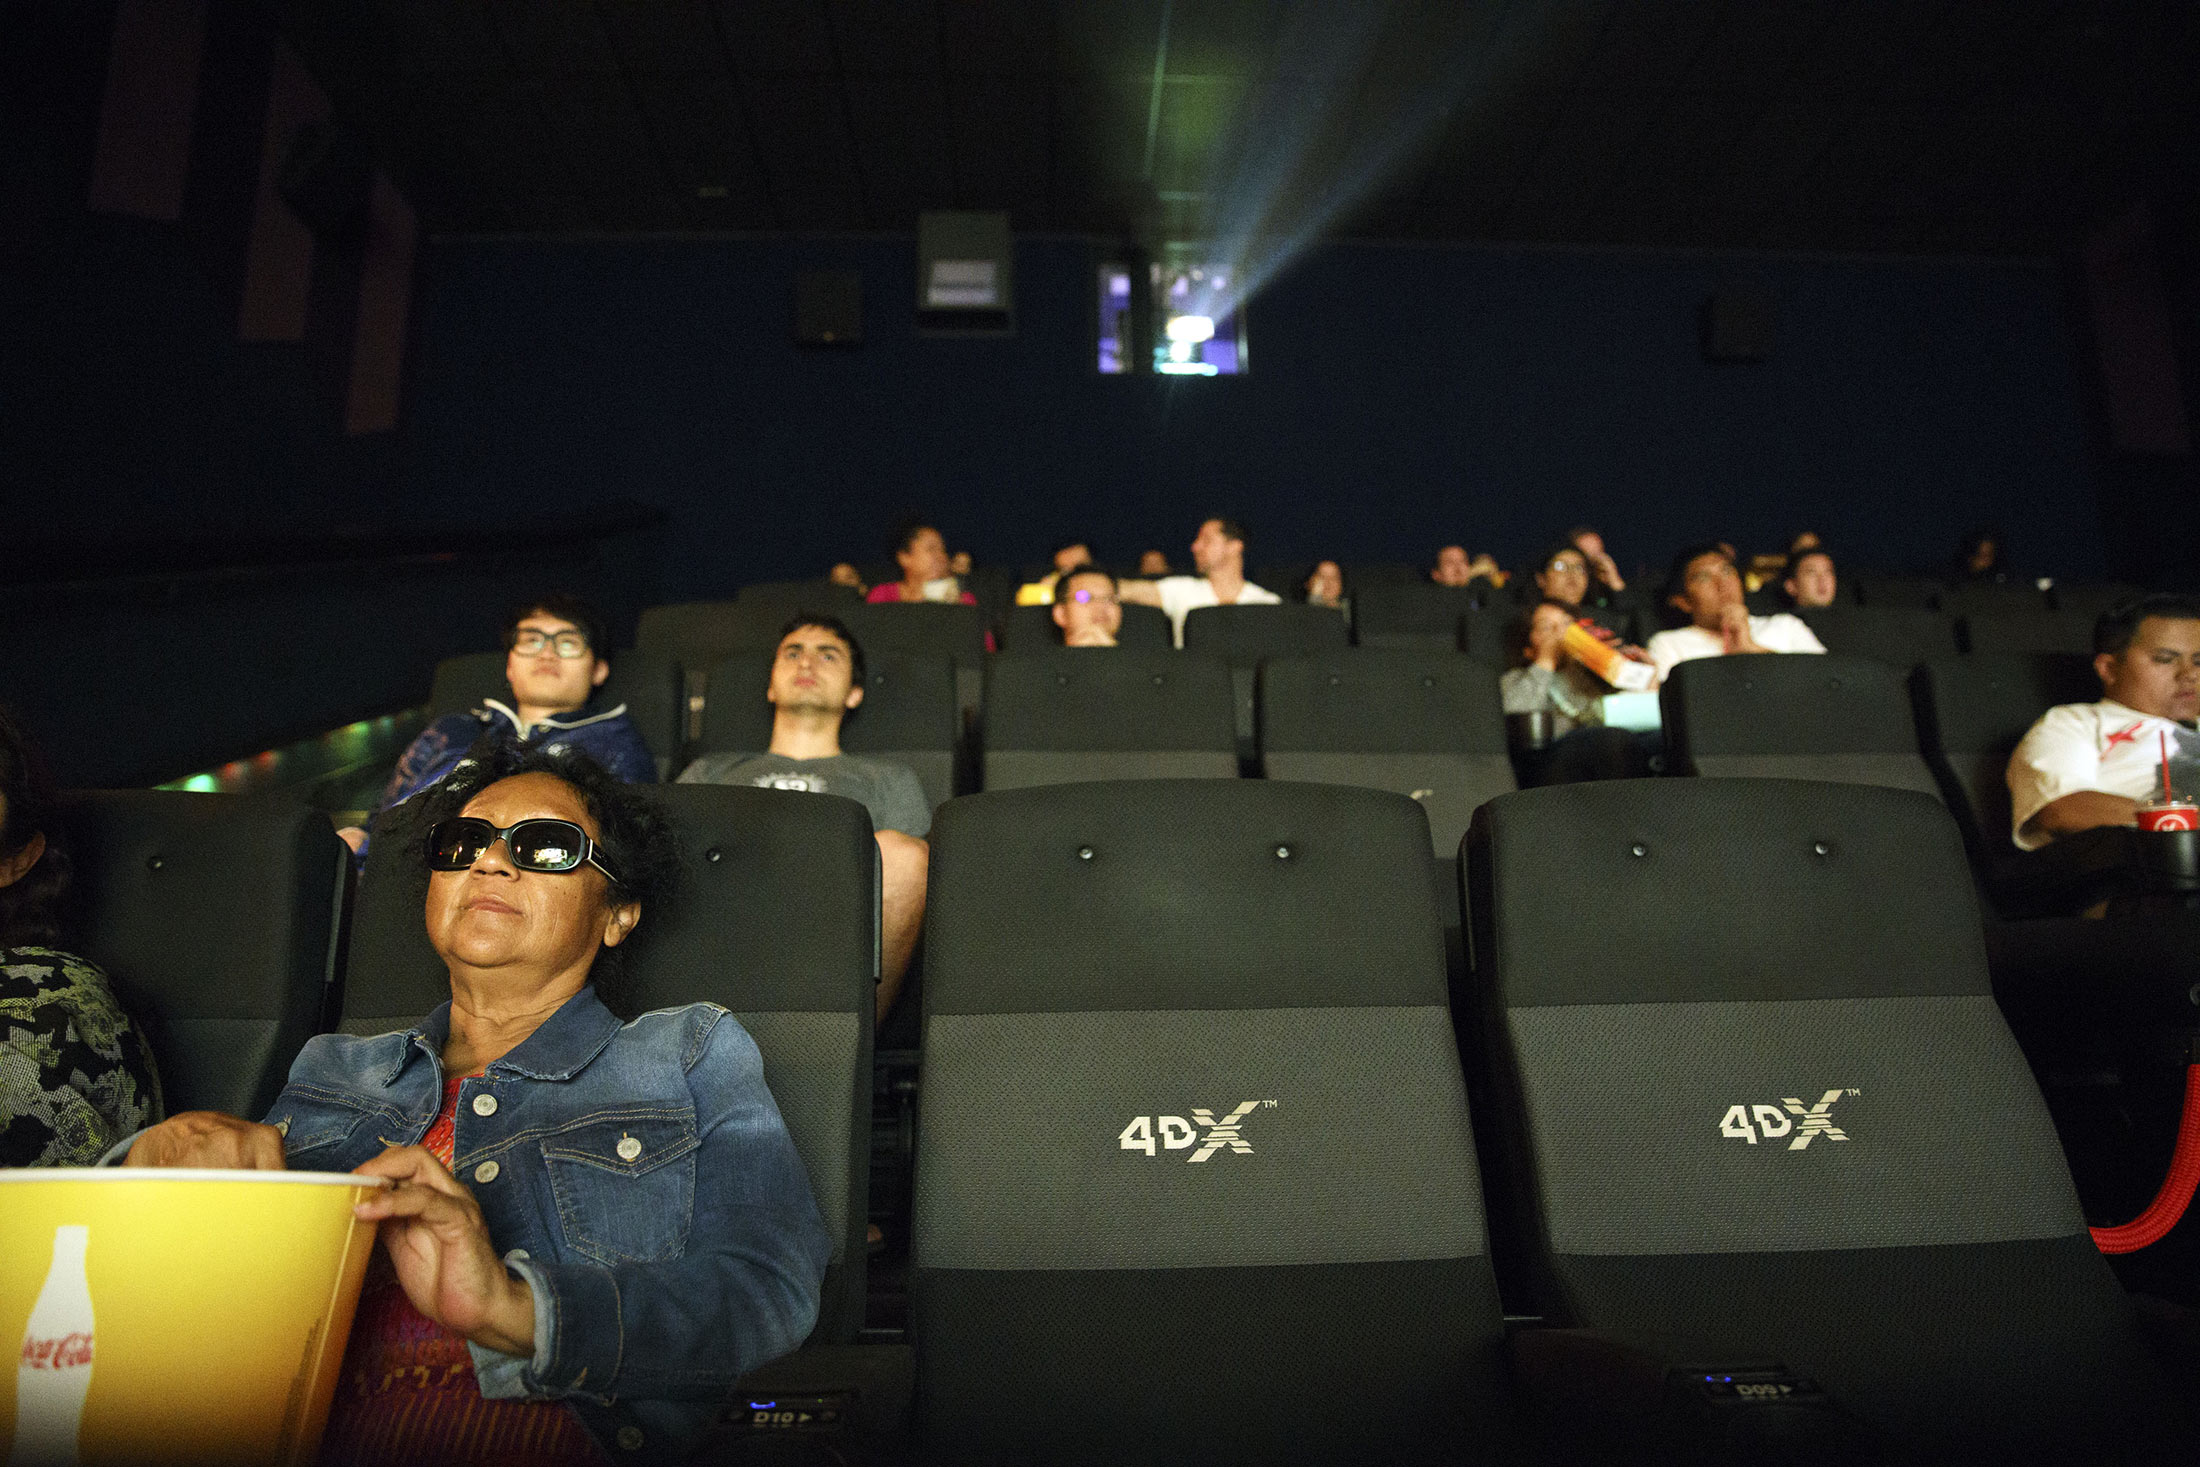 Regal Cinemas Plan May Let You Pay Less for Flops, More for Hits | Bloomberg